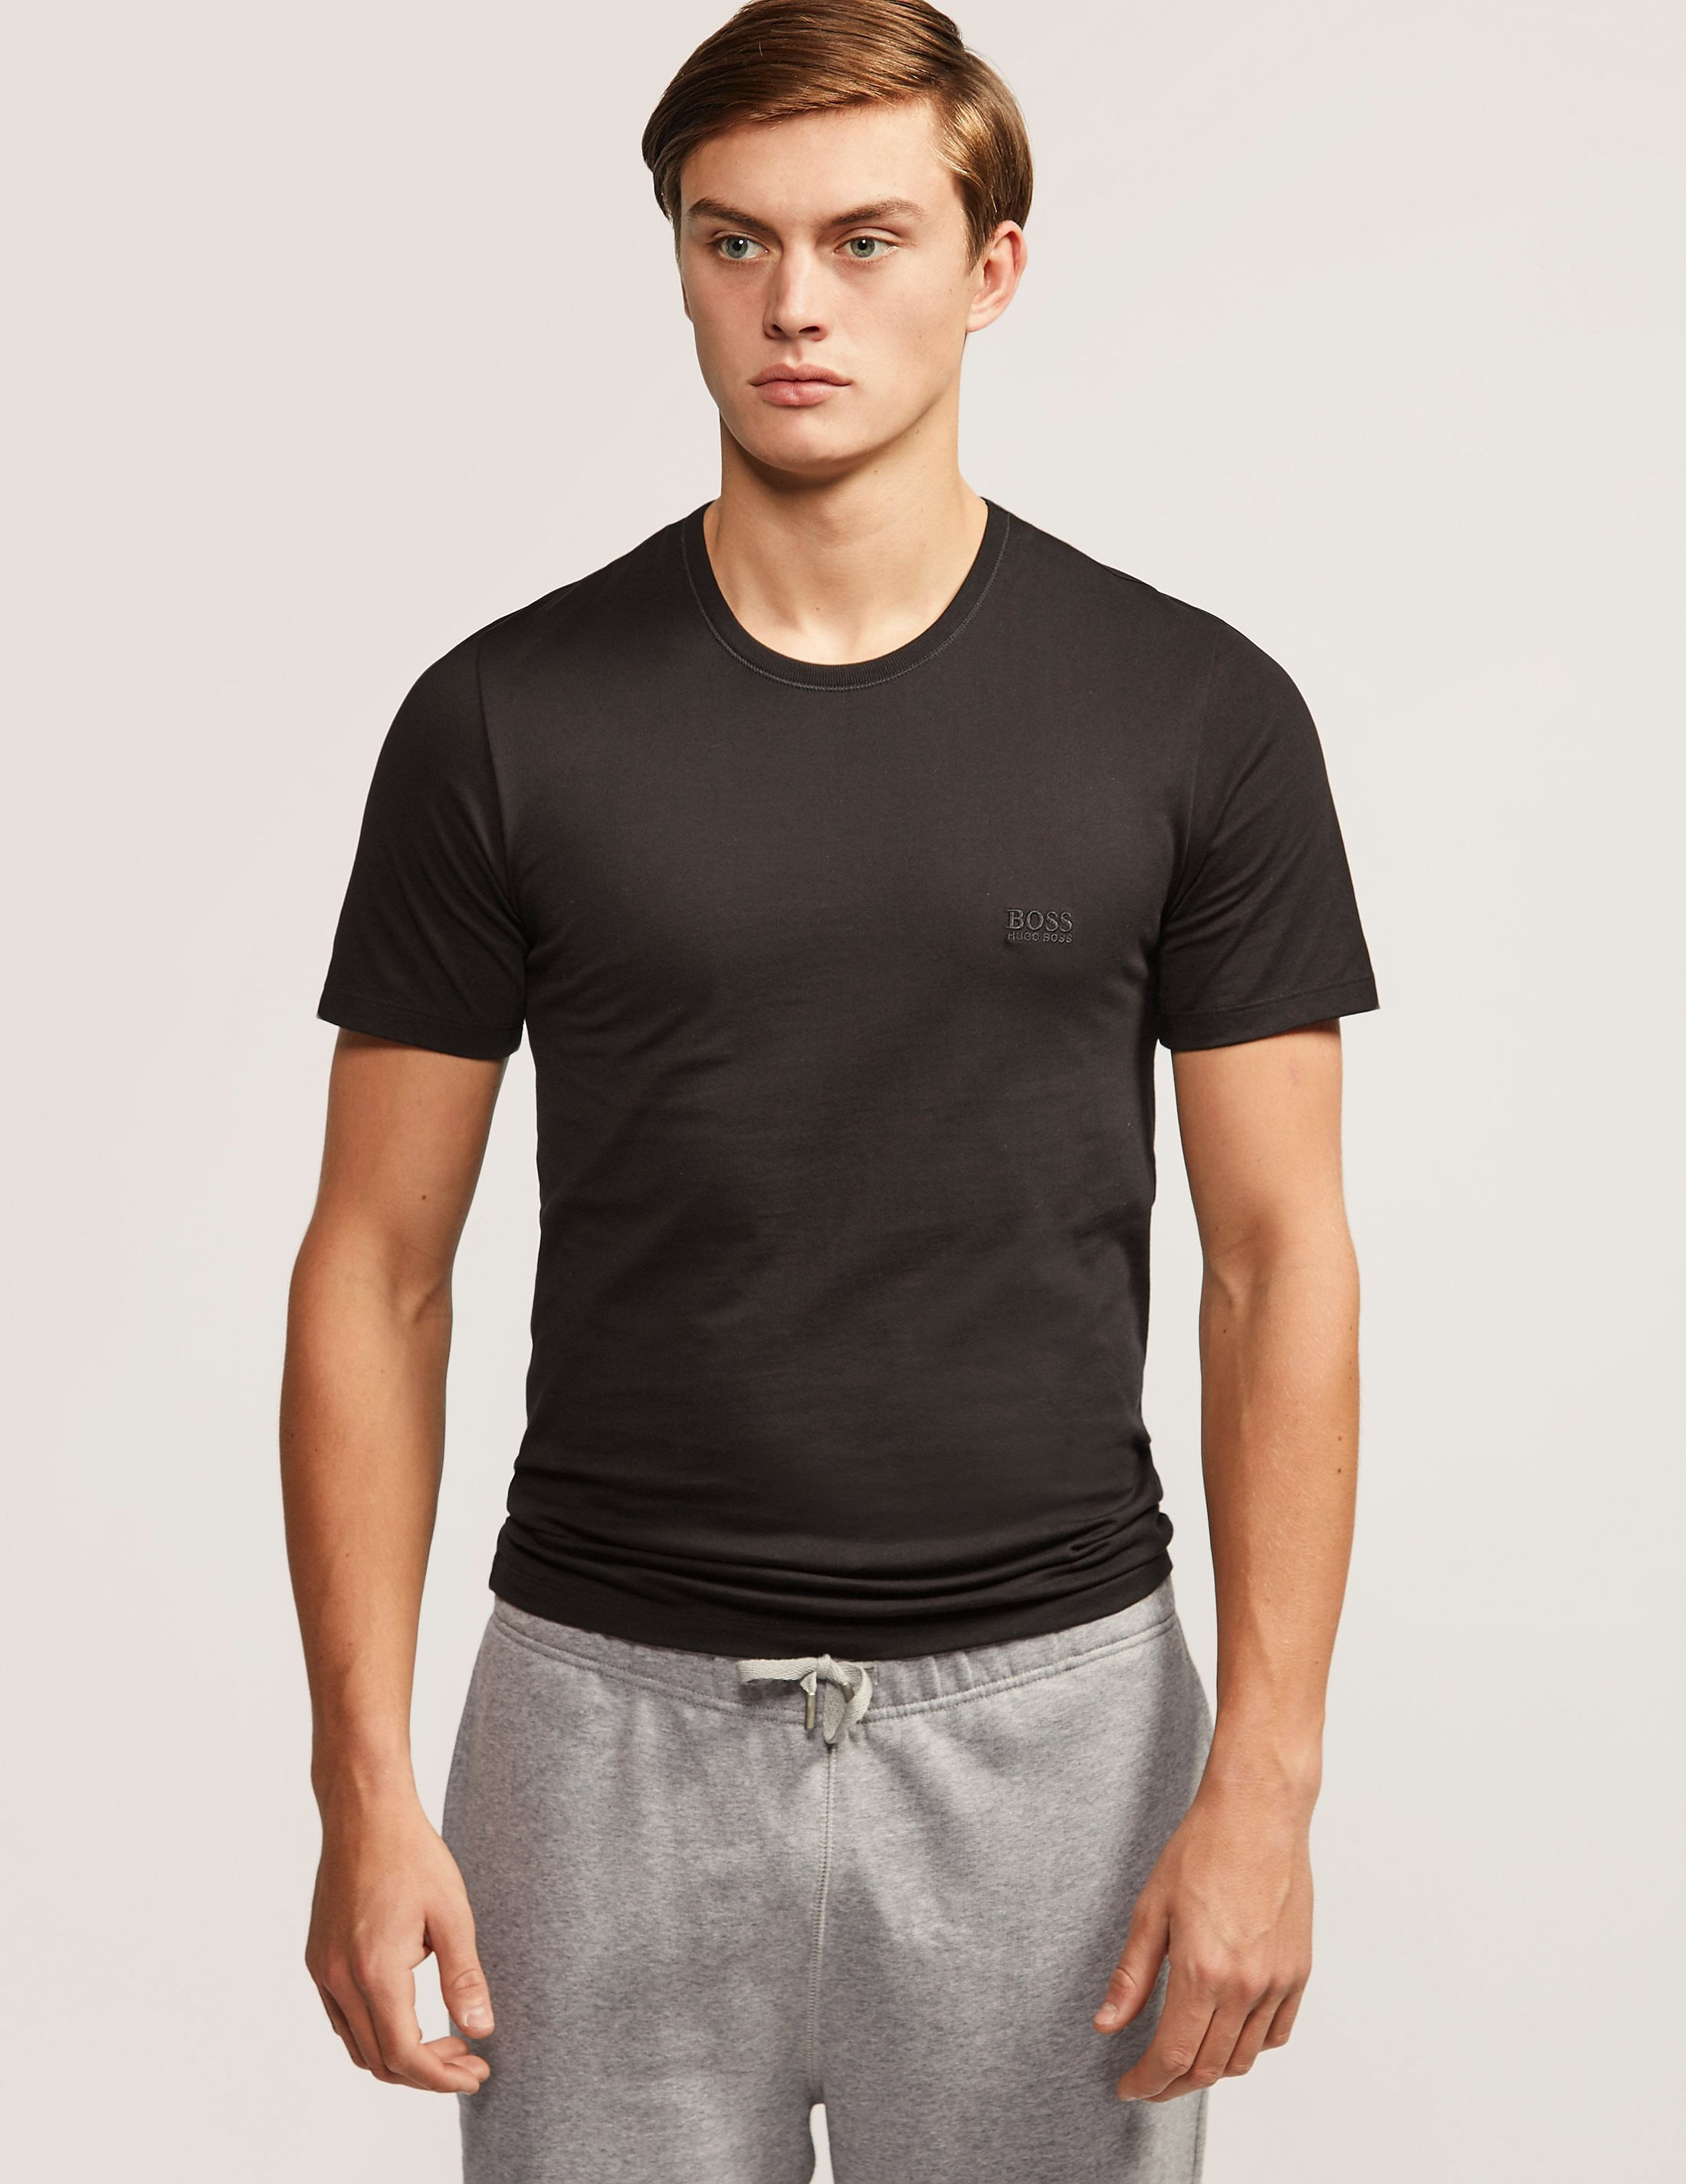 BOSS T-Shirt Classic Crew Neck 3-Pack